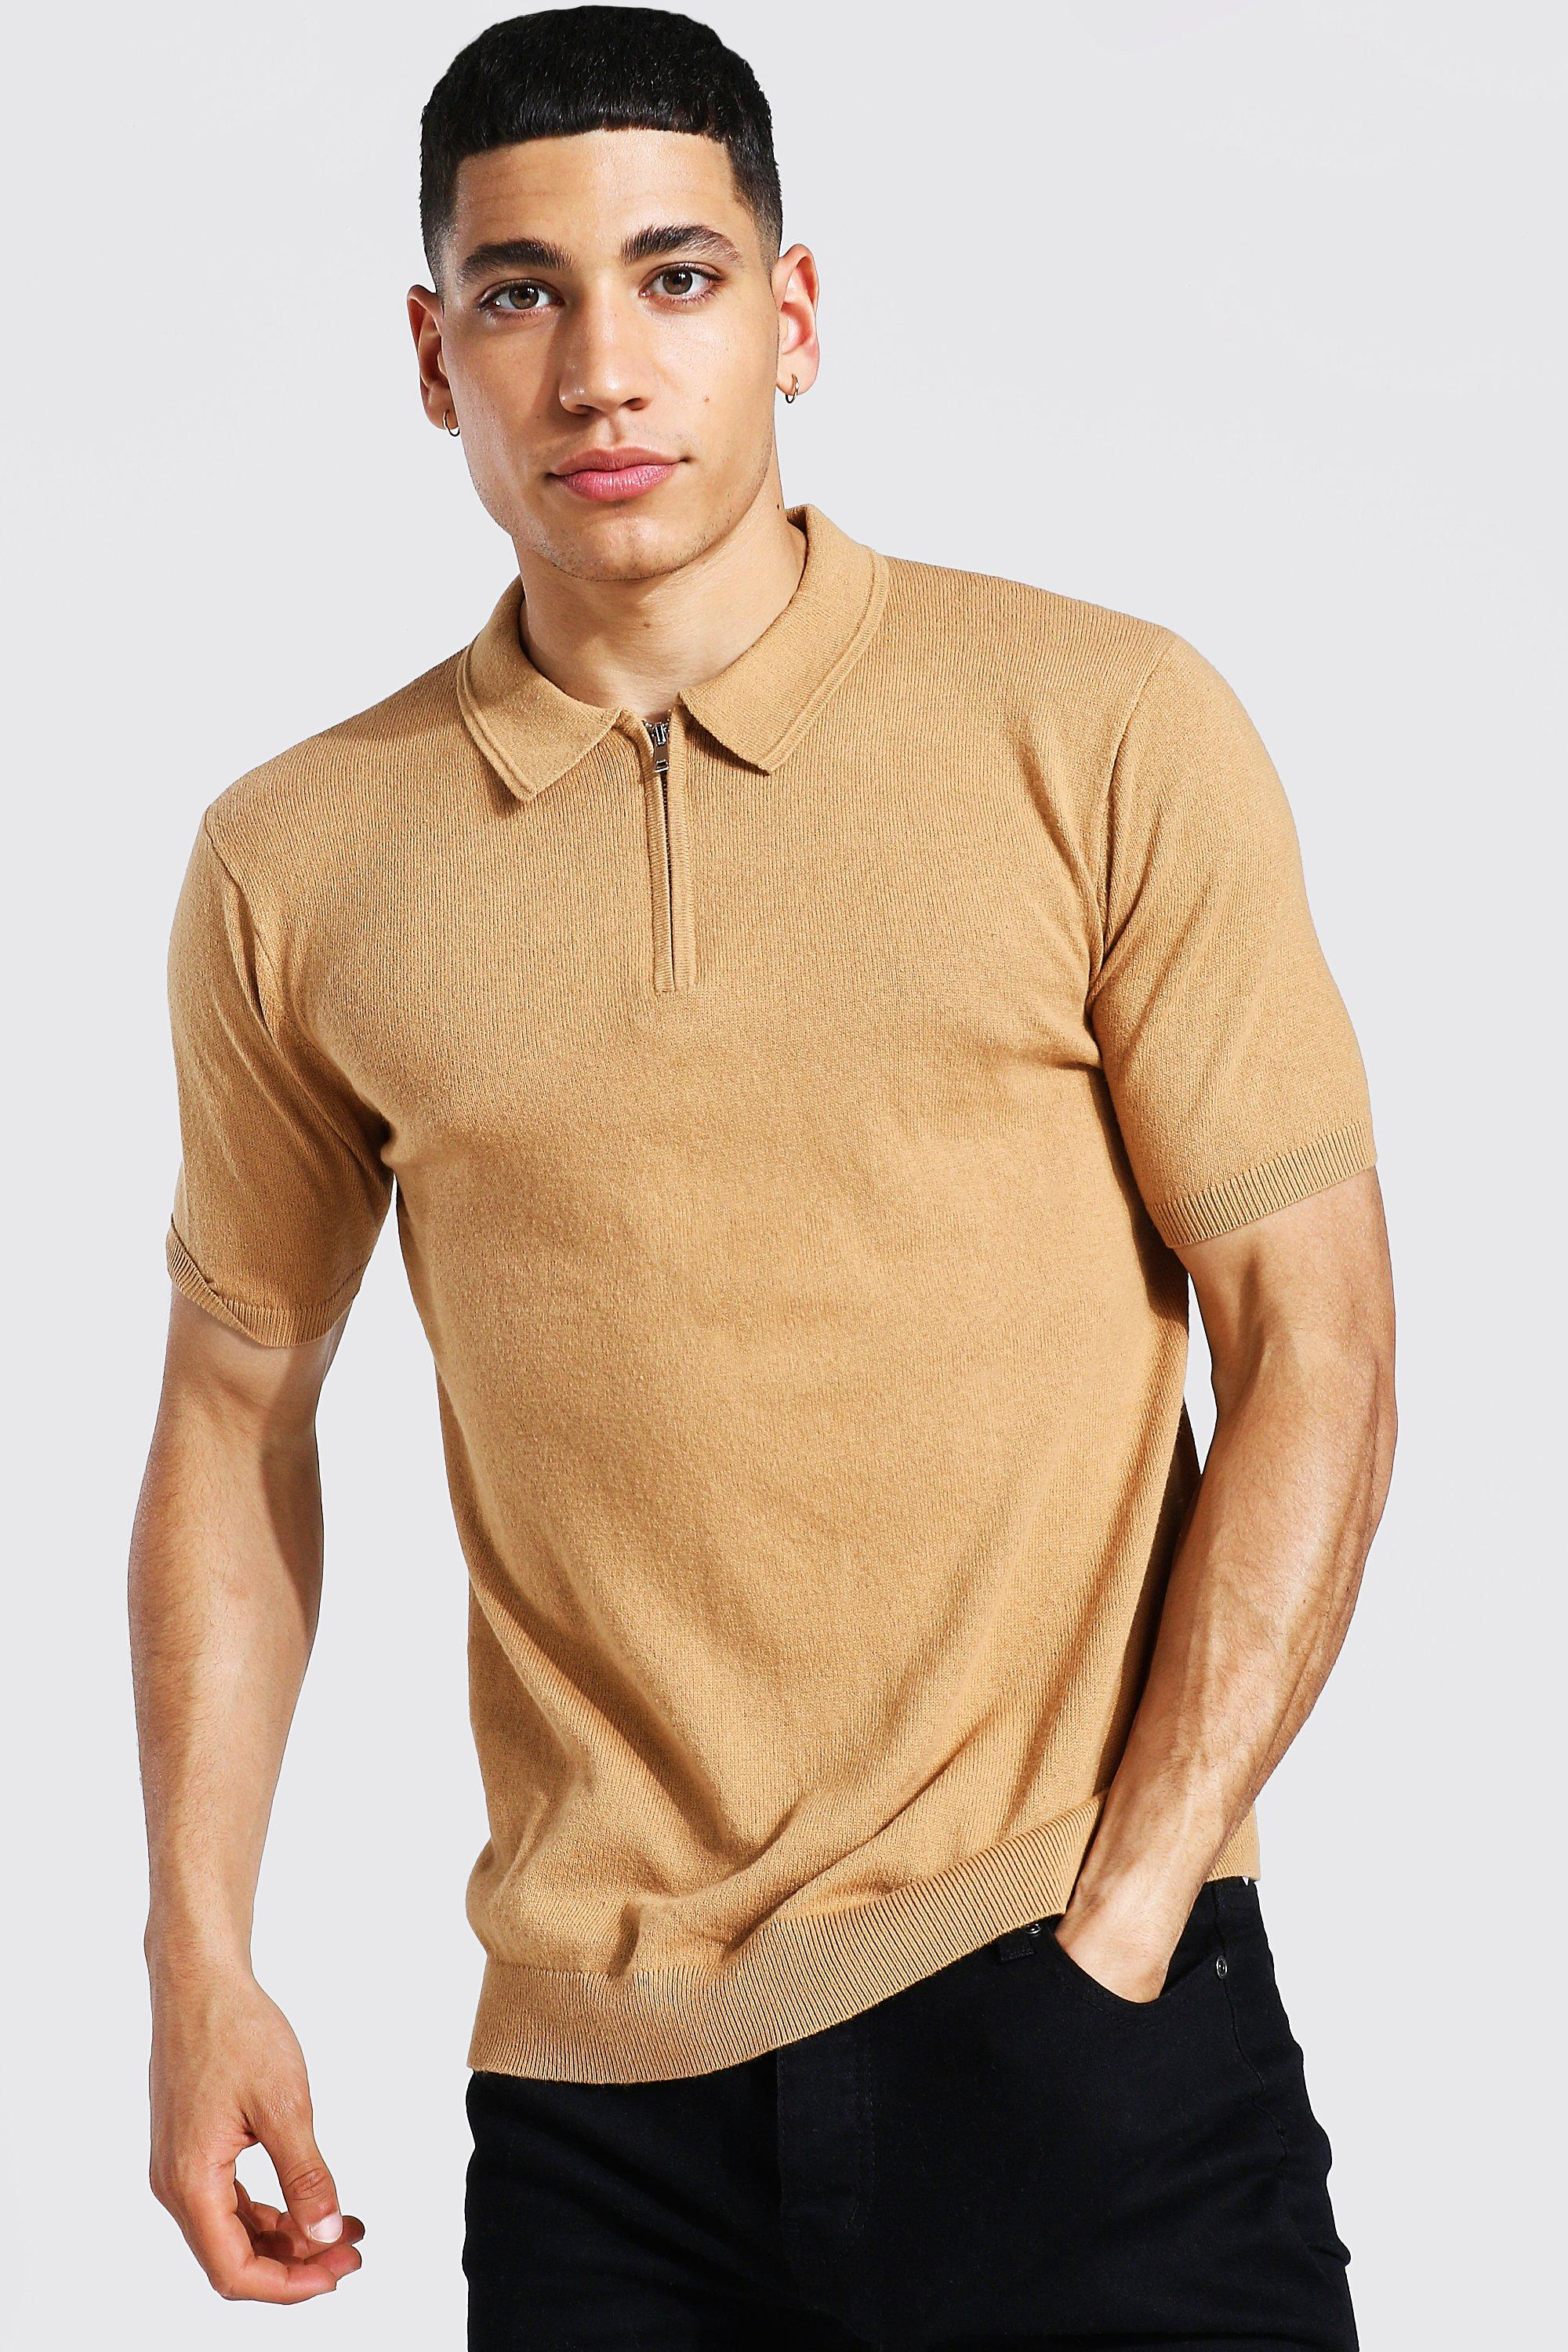 1970s Men's Clothes, Fashion, Outfits Mens Short Sleeve Half Zip Knitted Polo - Beige $8.40 AT vintagedancer.com